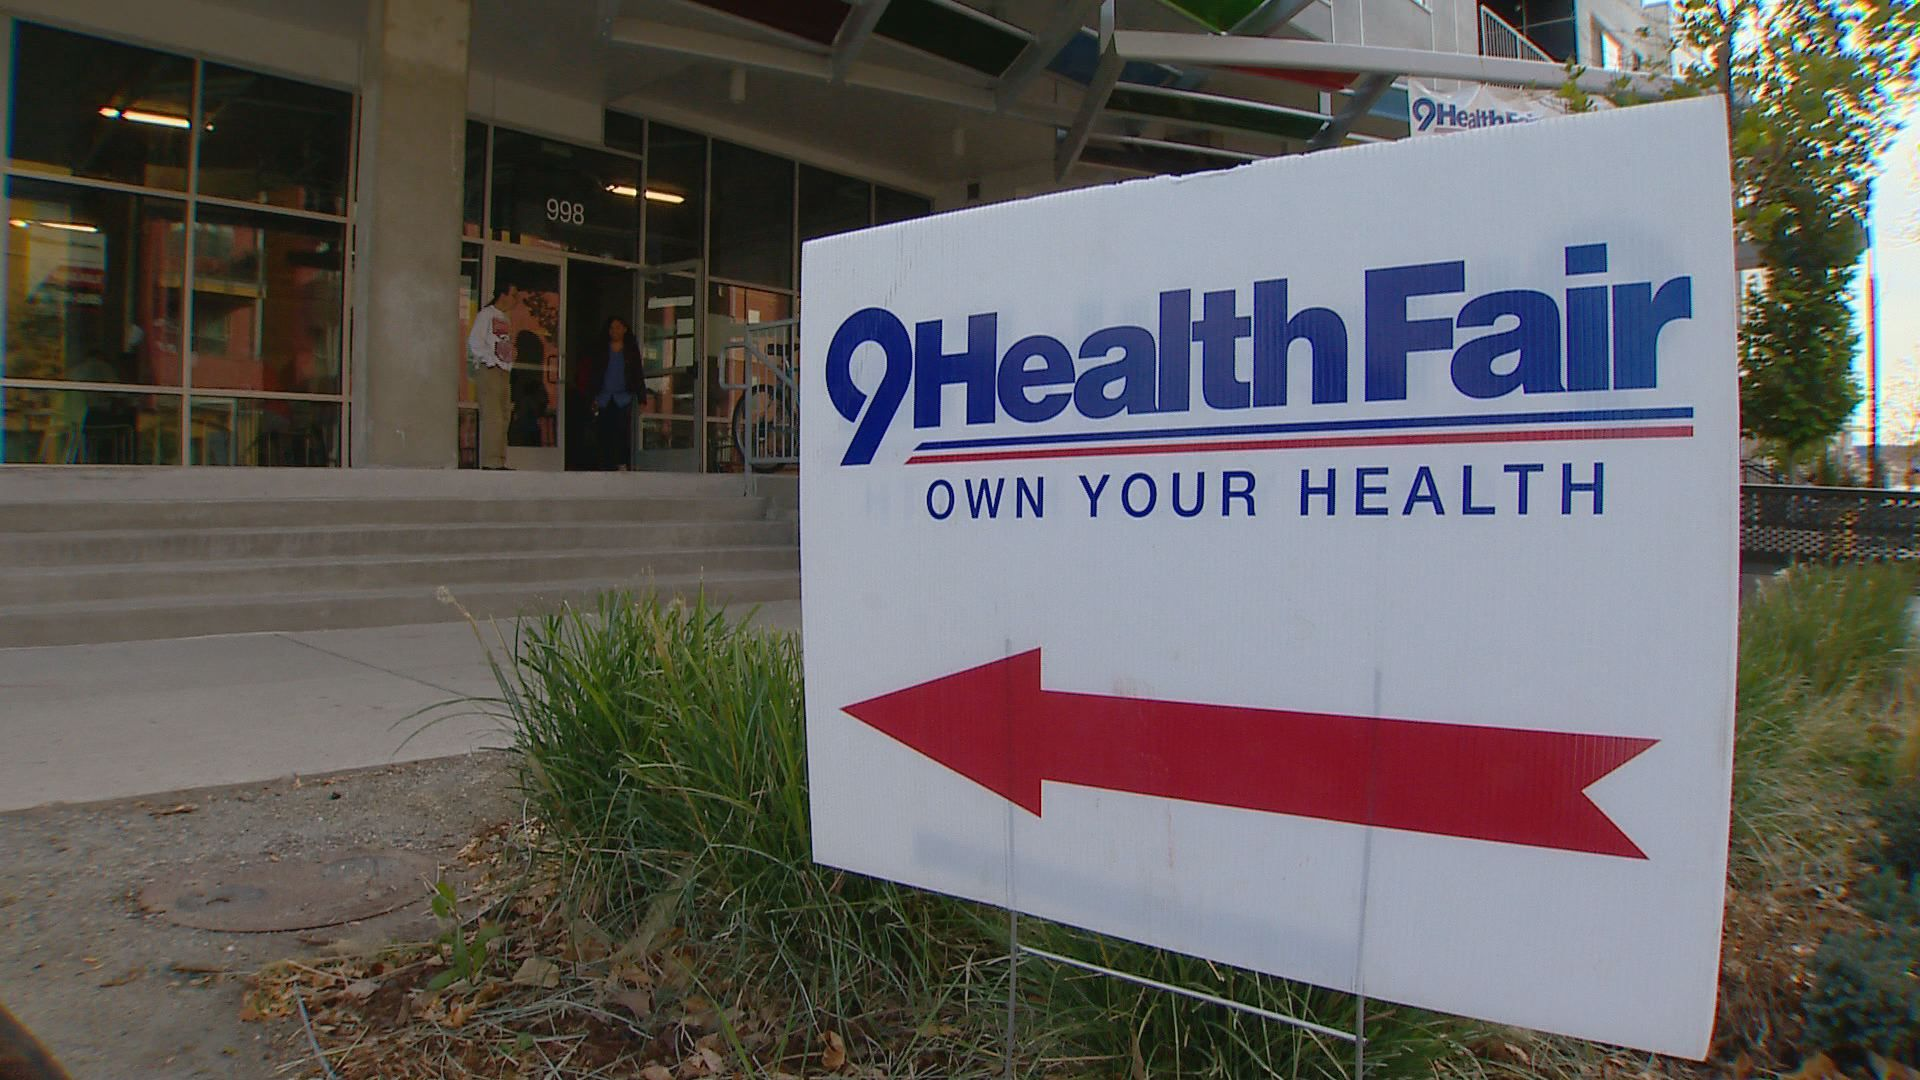 Top 9 Reasons to Attend a 9Health Fair this Spring